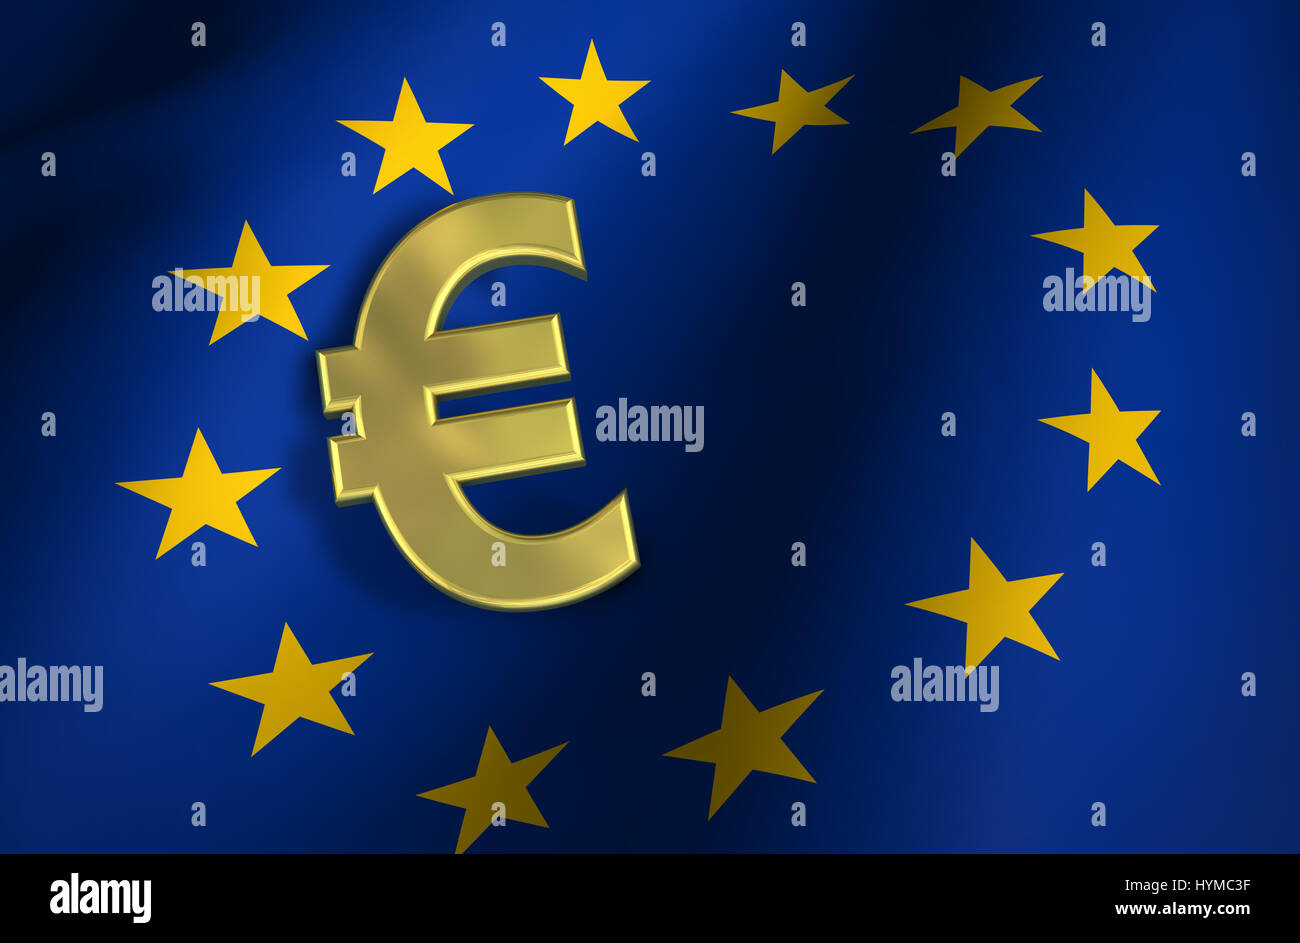 European union flag and euro sign gold icon and eu community european union flag and euro sign gold icon and eu community market symbol 3d illustration concept background biocorpaavc Images